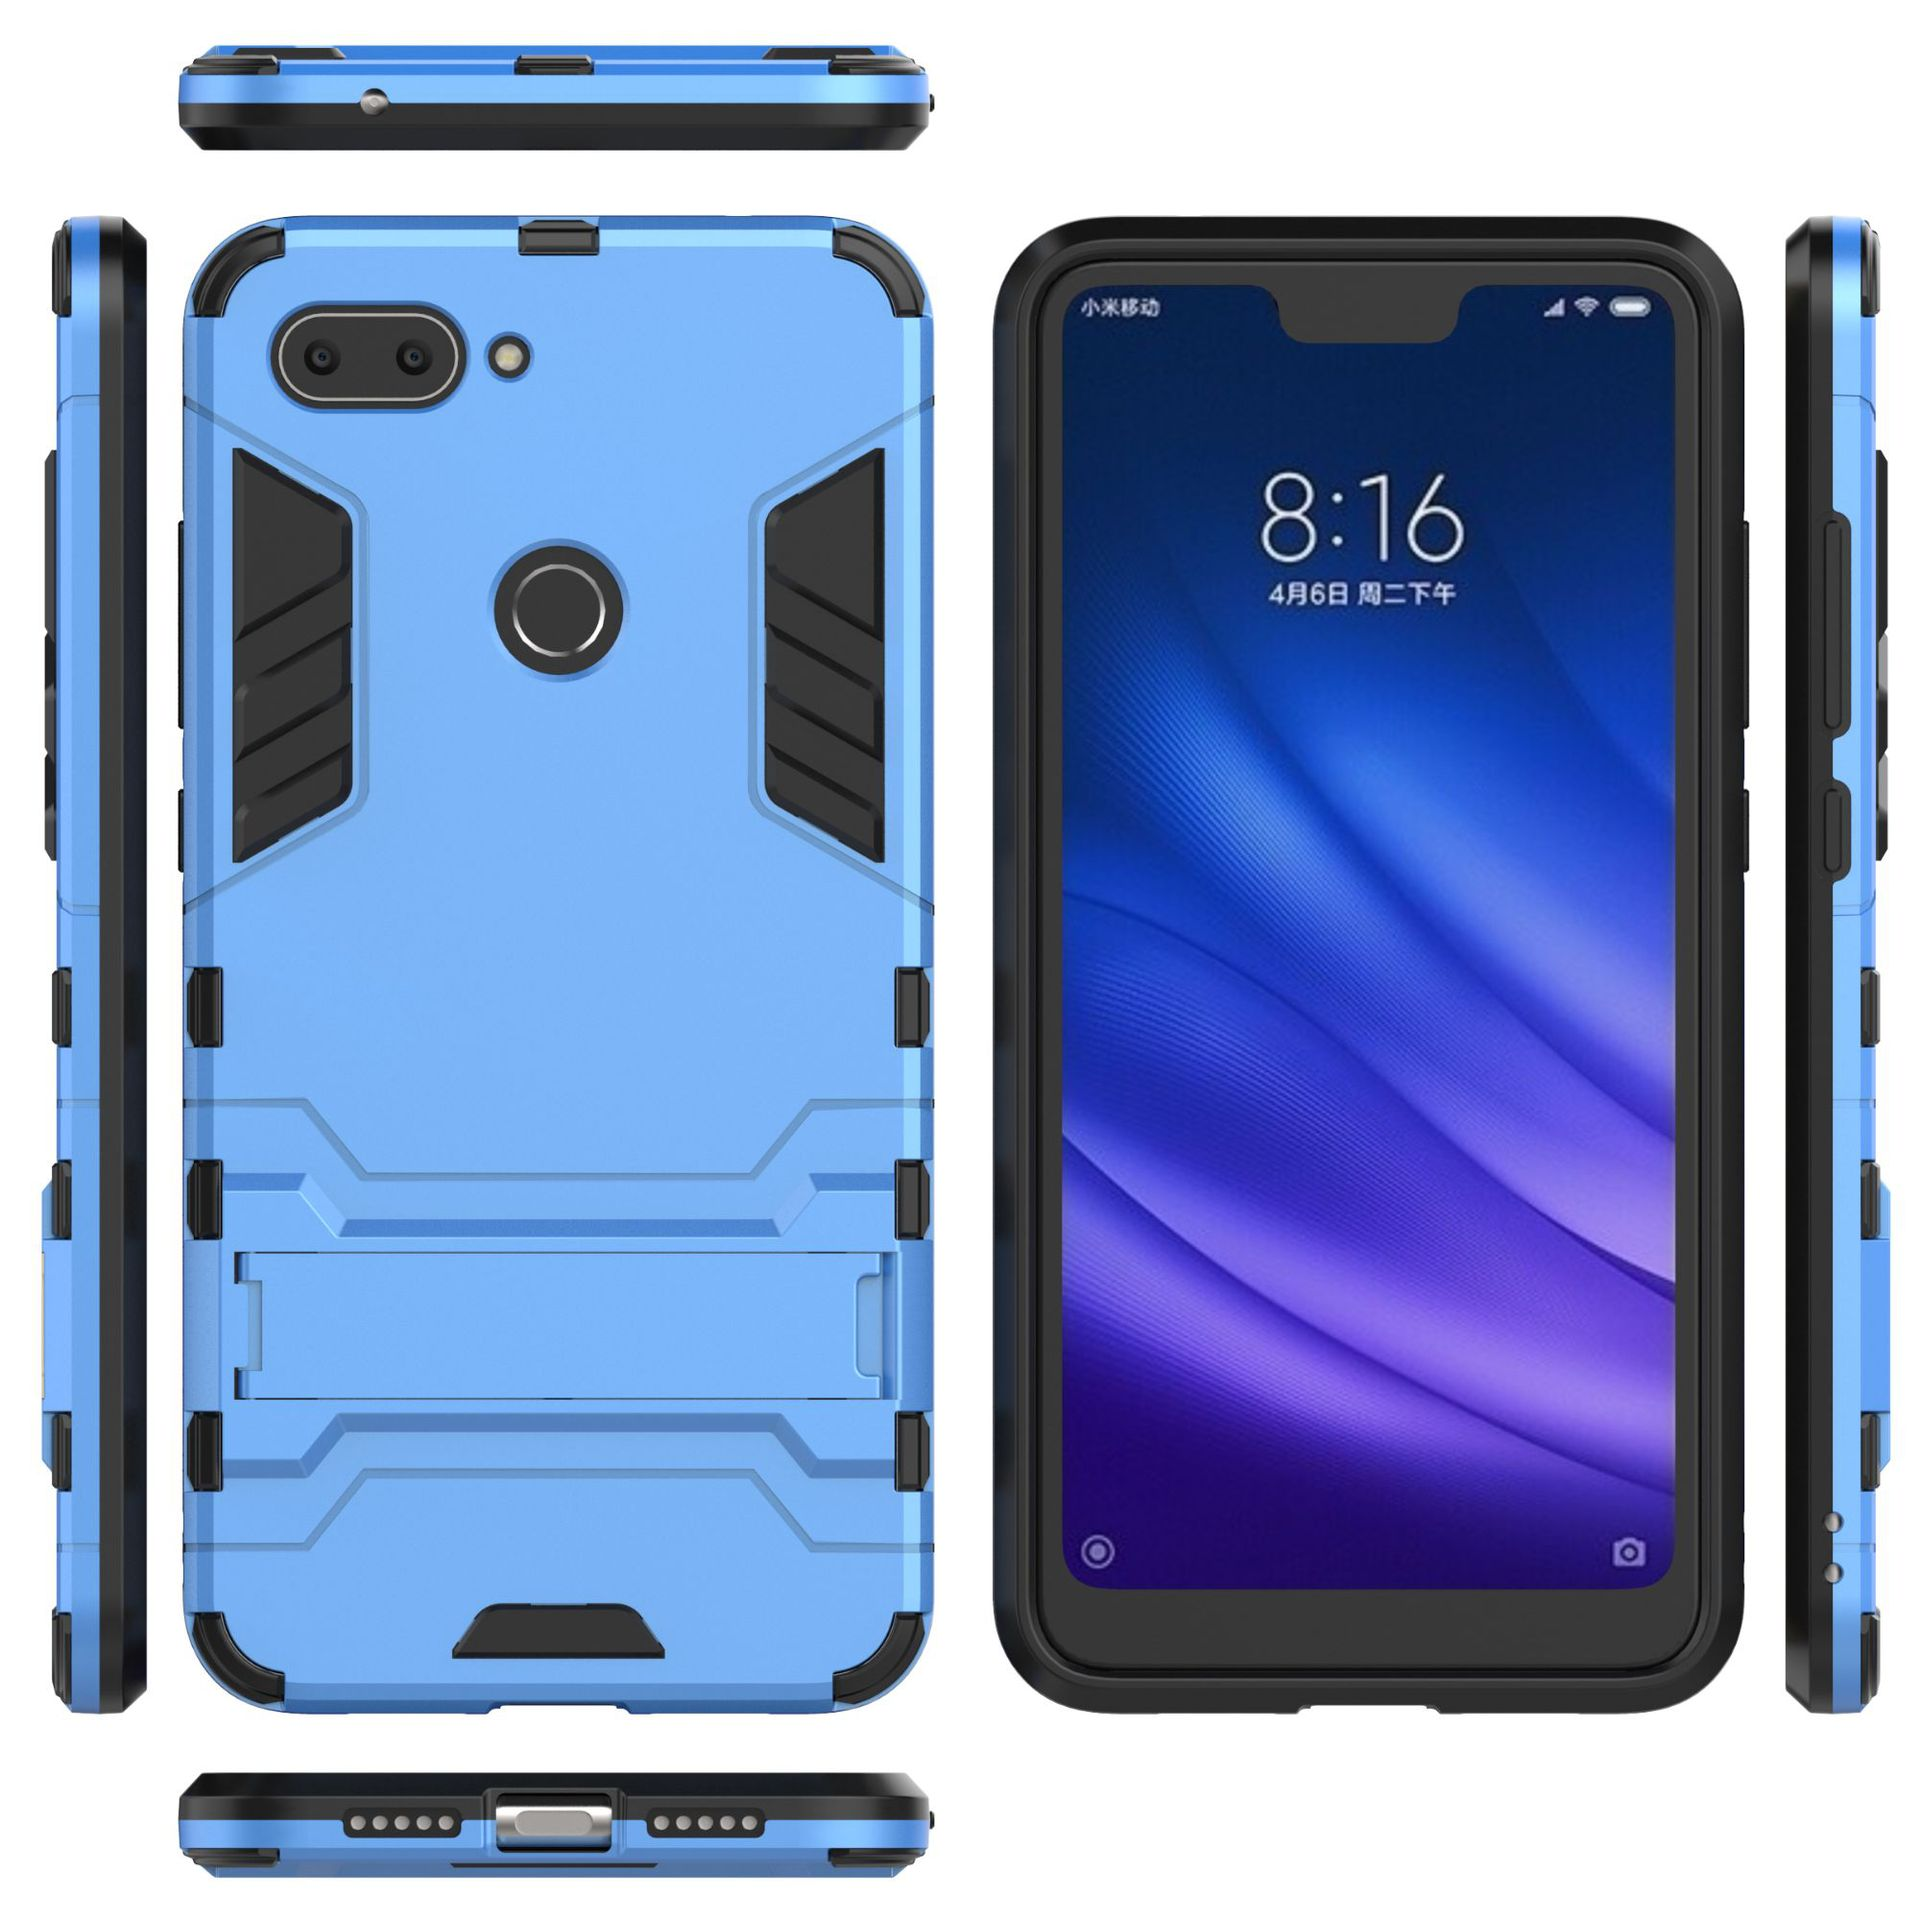 Anti Shock Proof Phone Case PC+Silicone Stand Cover Rubber Robot Armor Phone Shell for Xiaomi Mi8 lite